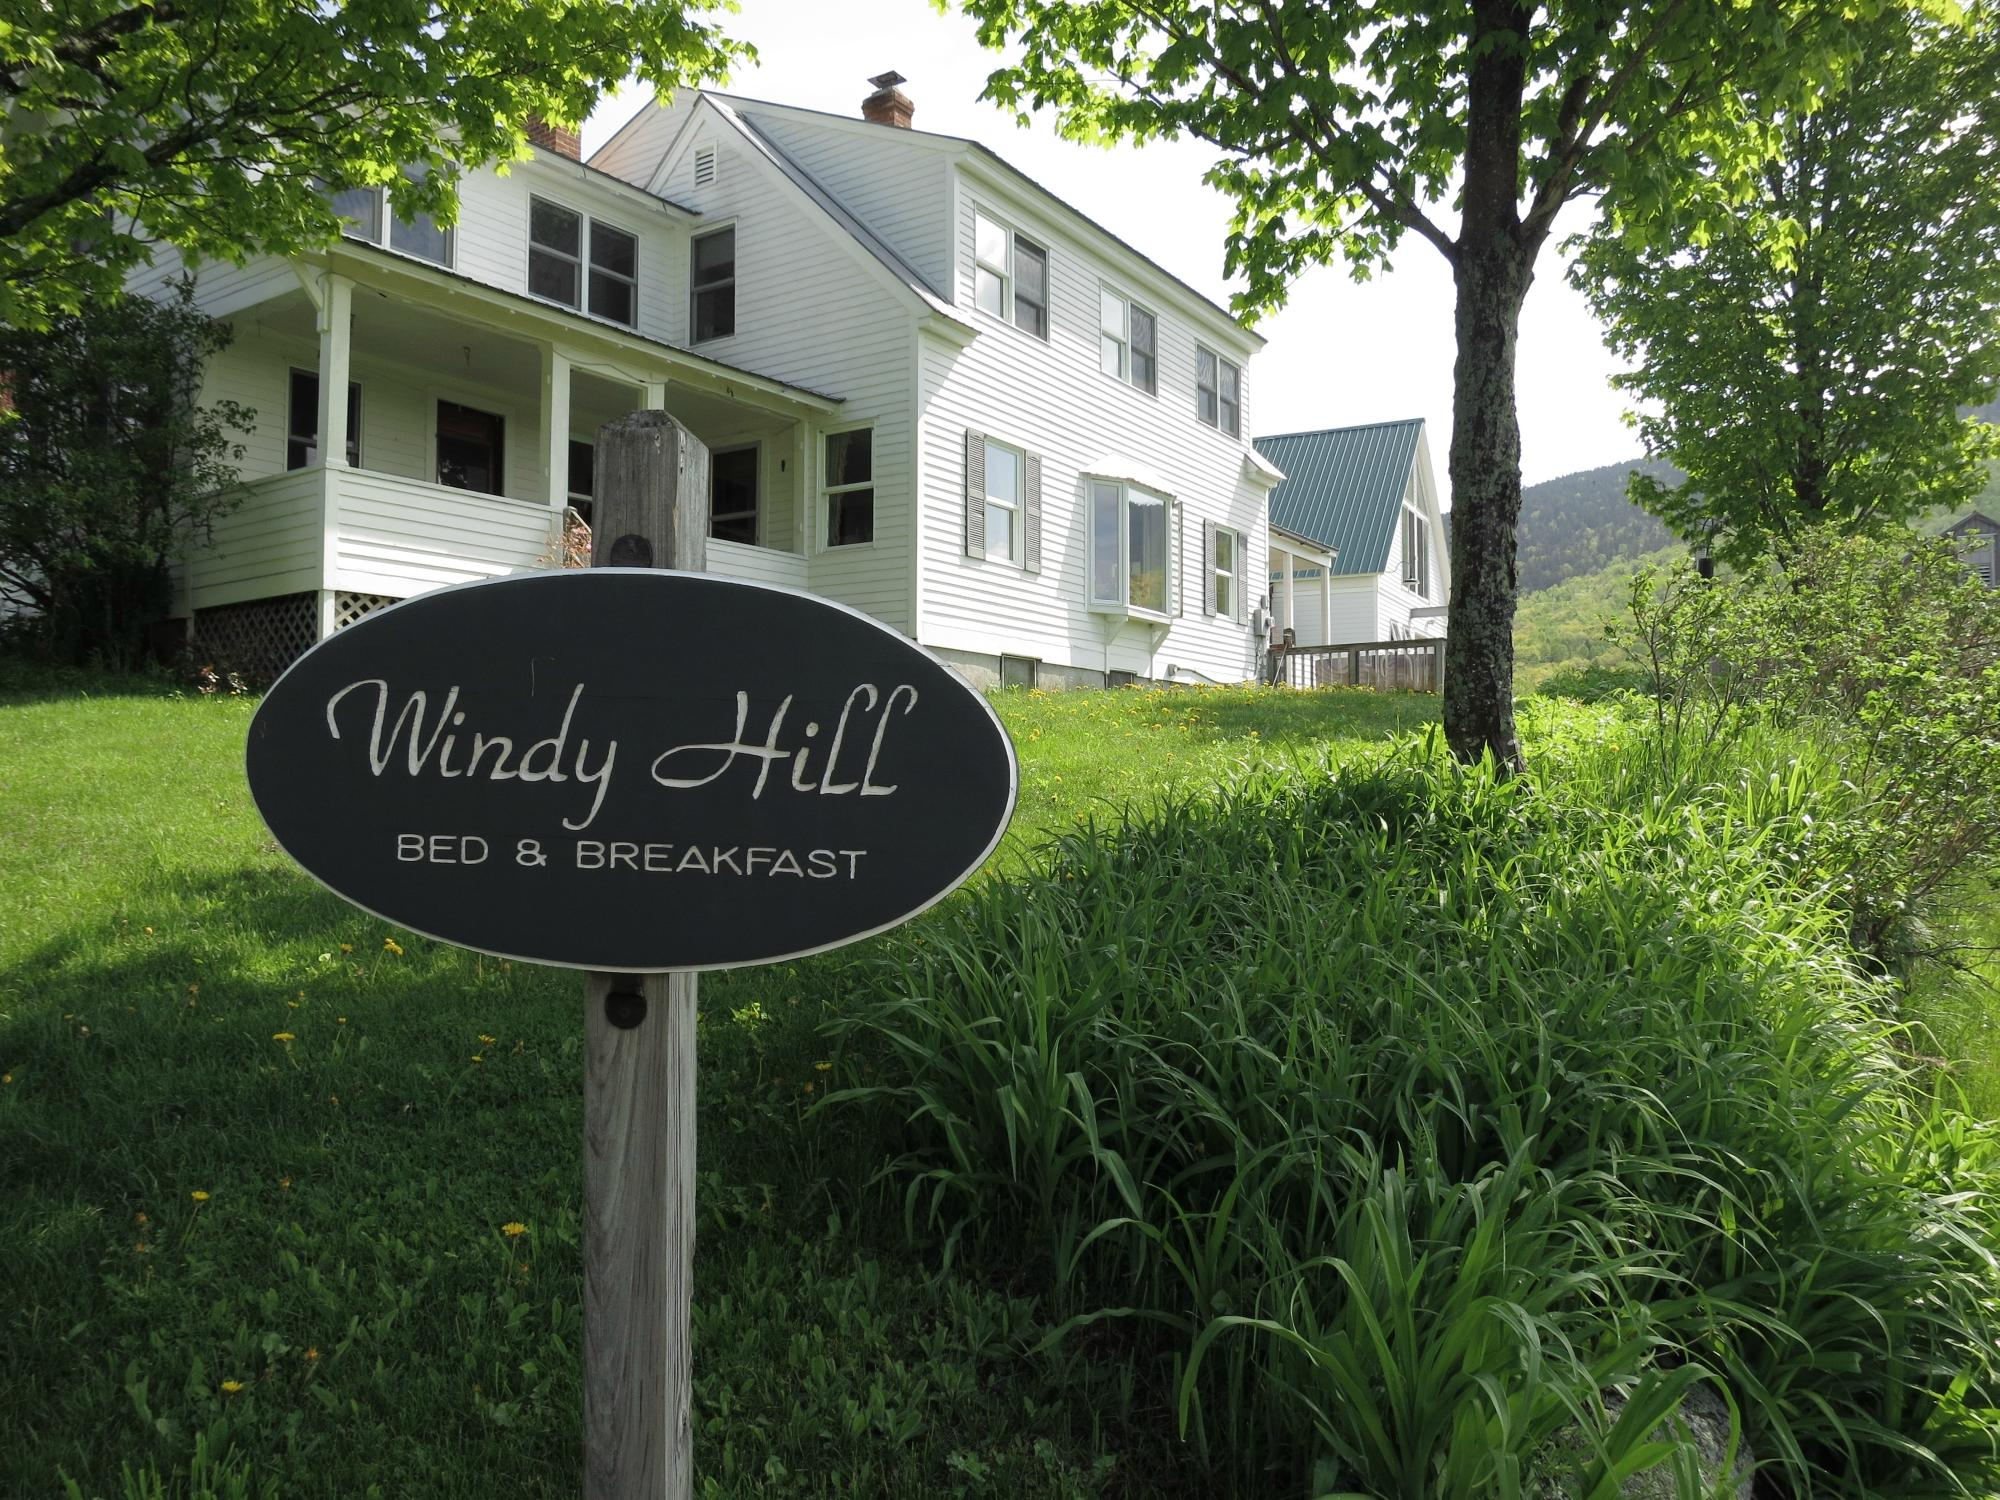 Windy Hill Bed & Breakfast